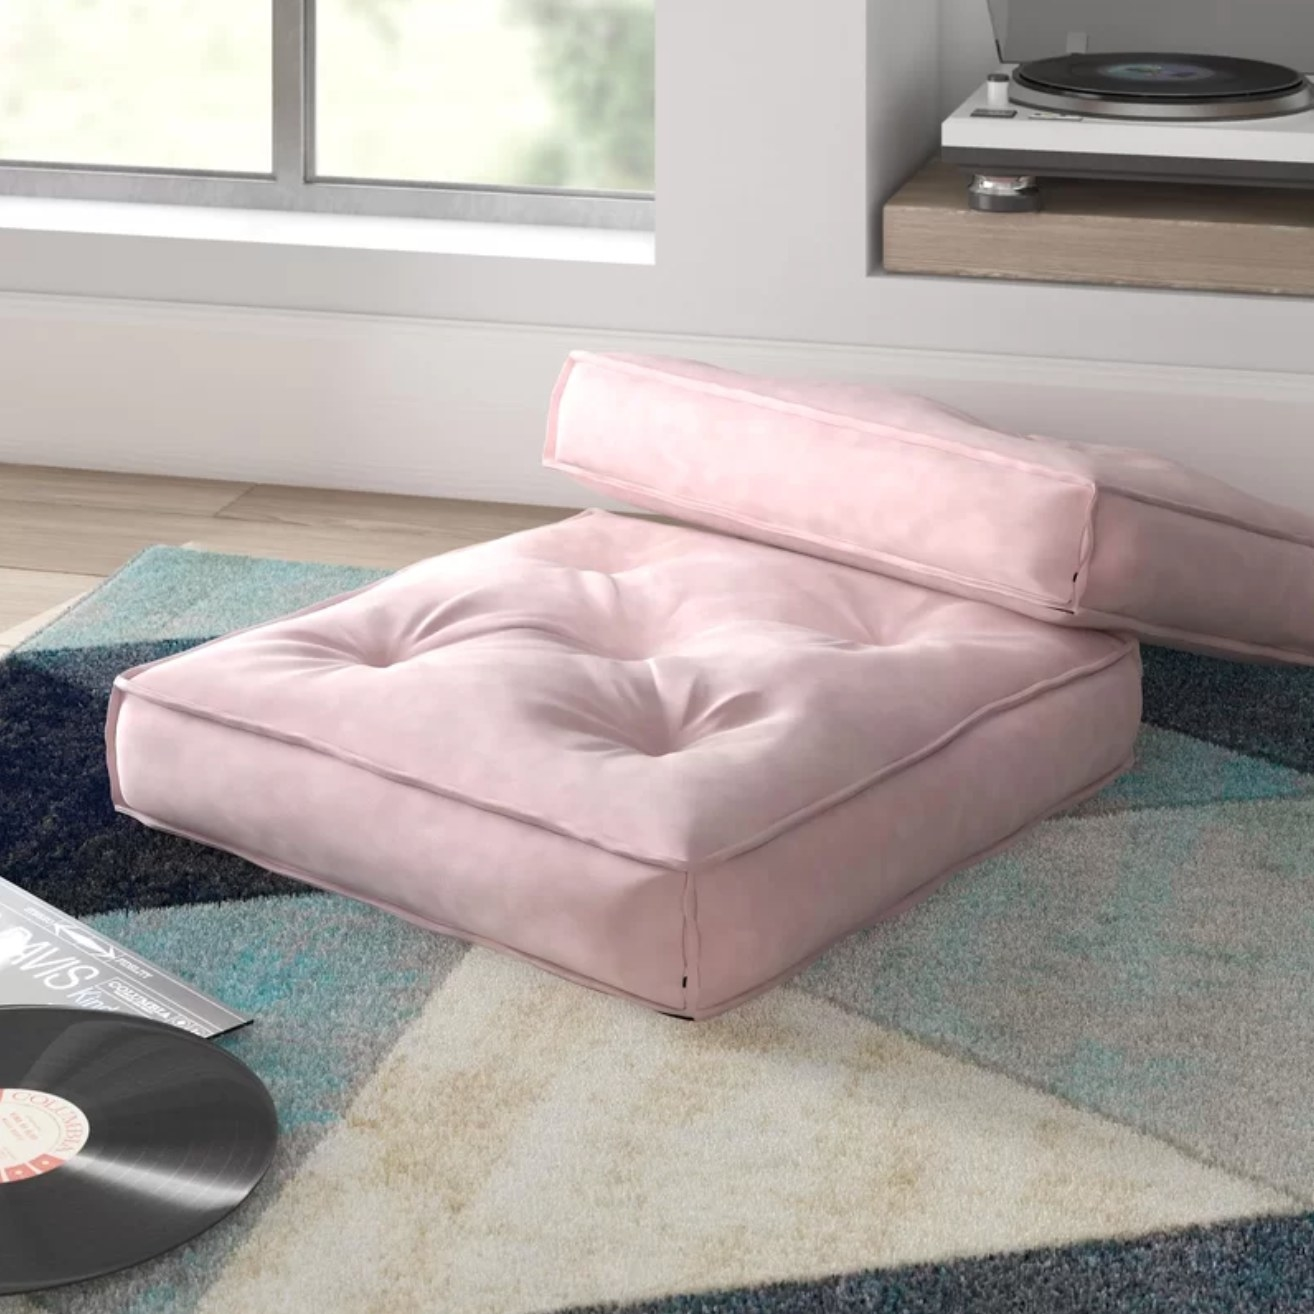 The pink floor pillow on a colorful rug